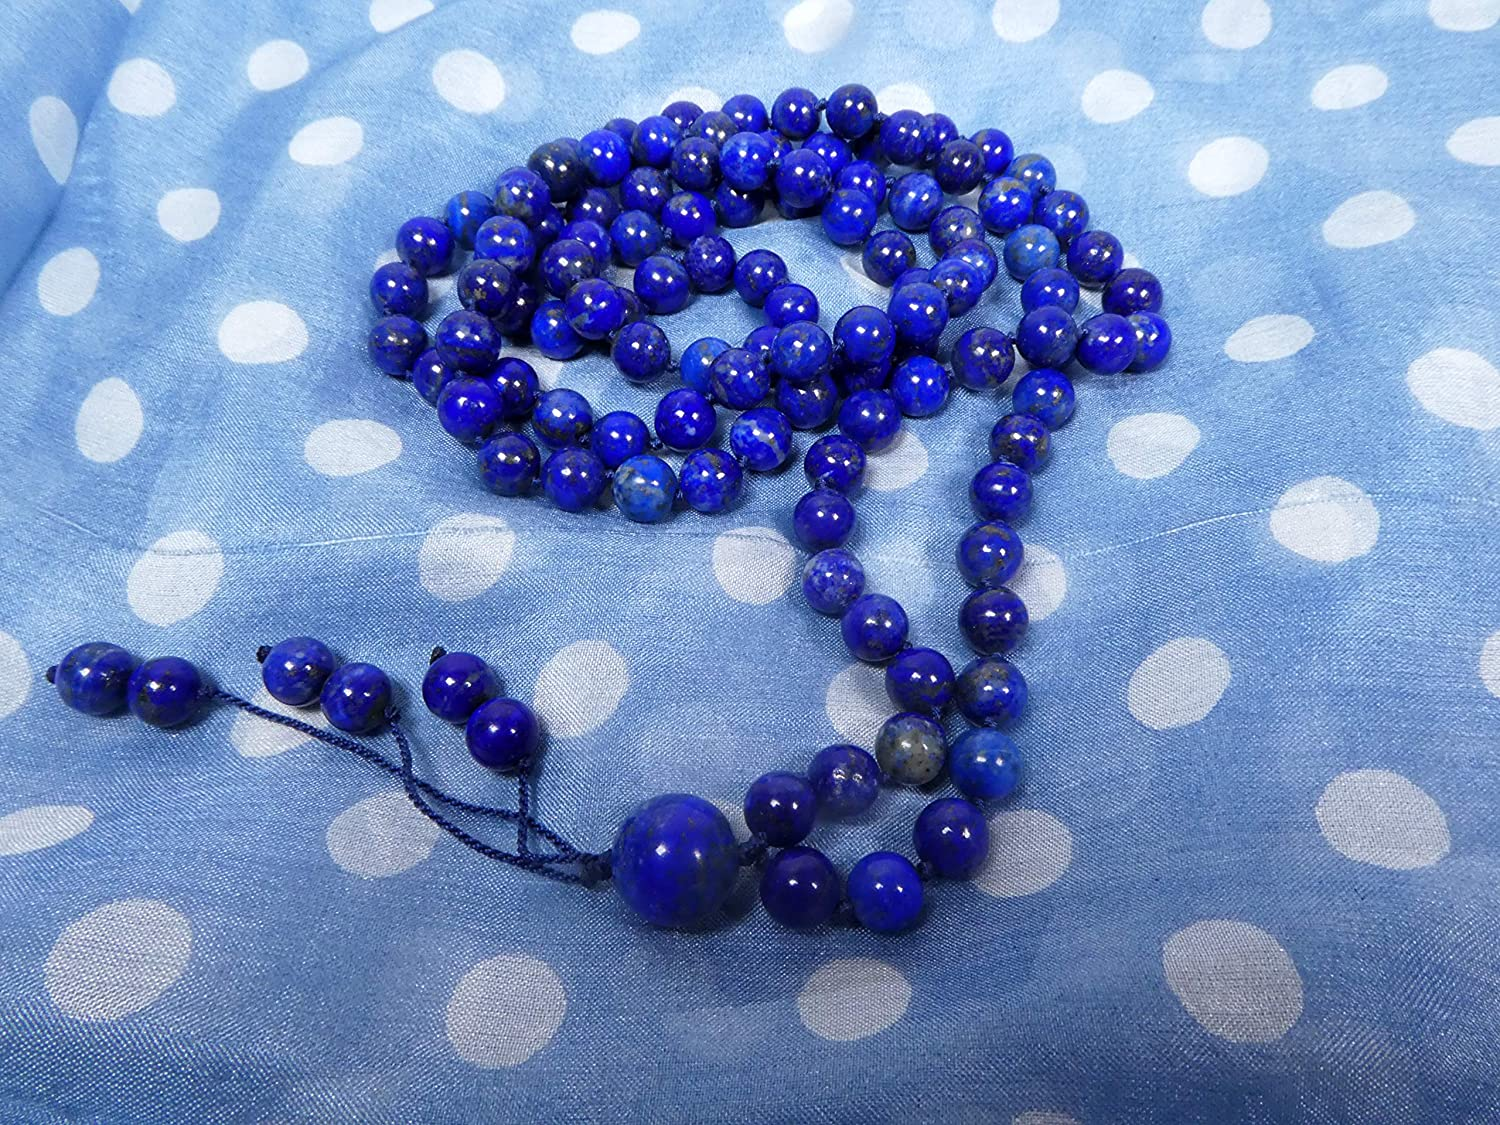 Highest Quality Knotted Mala 108 + Guru Bracelet with 6.5-mm Beads and a Beaded Tassel 2354 Necklace Lapis Lazuli AAA**